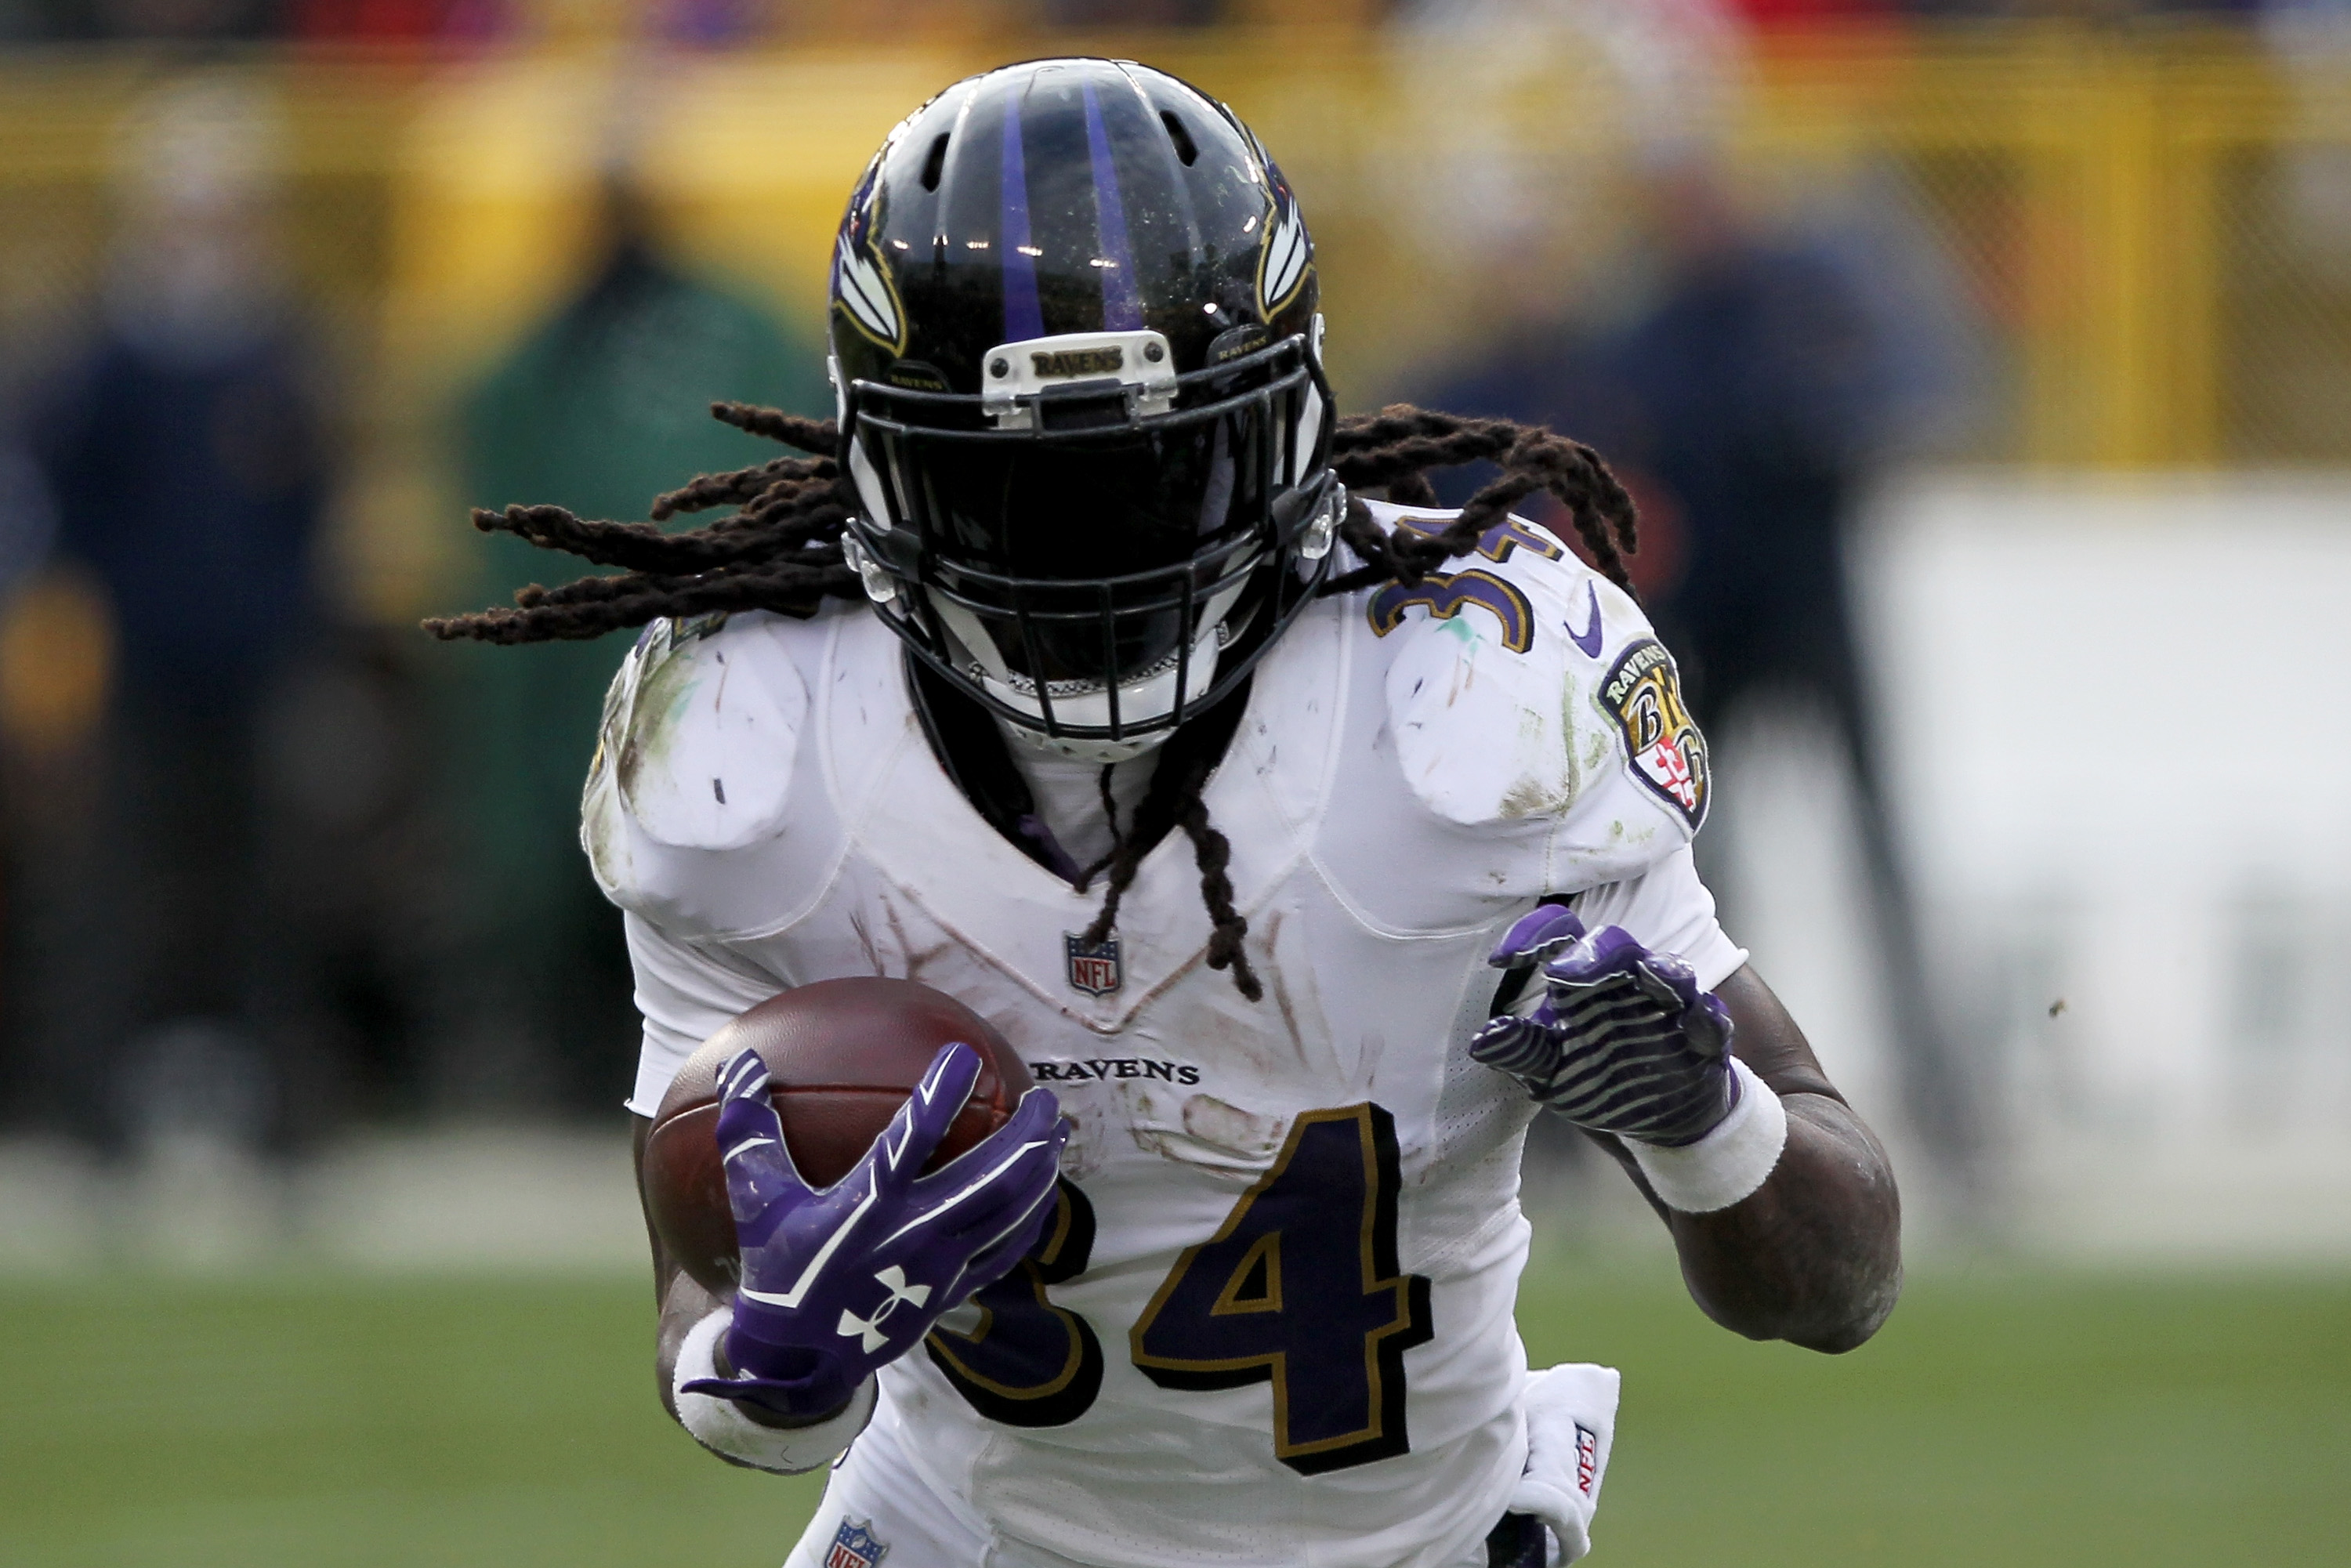 Ravens CB Jimmy Smith carried off field with Achilles injury